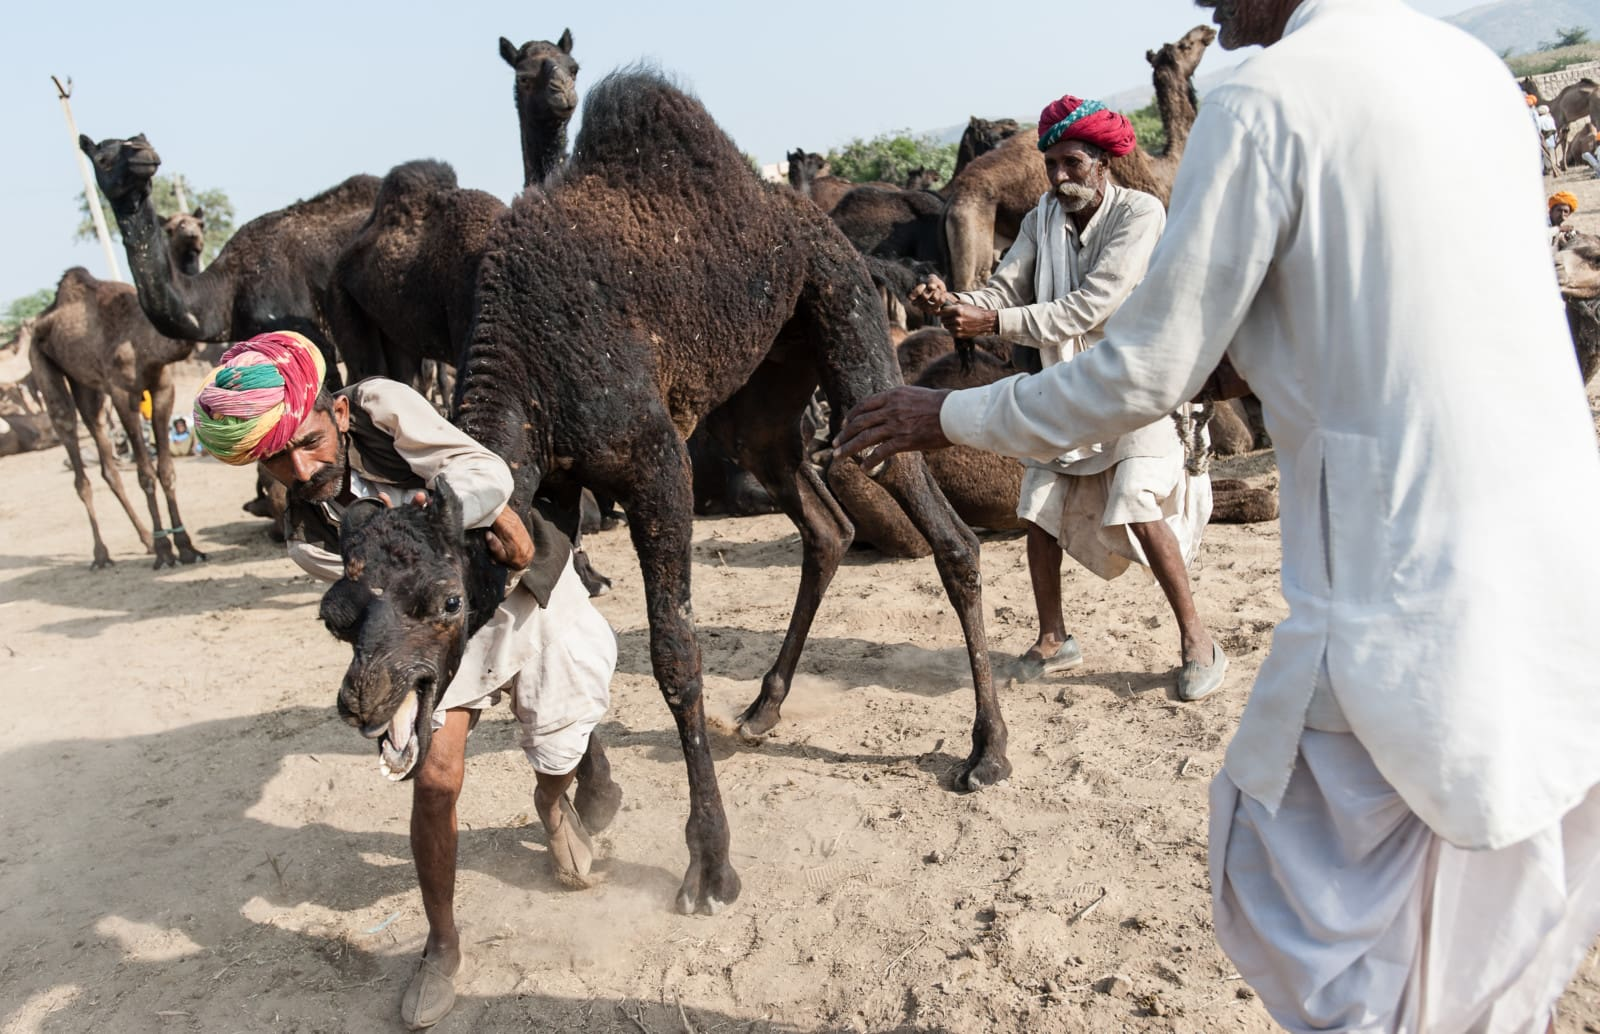 camel-pushkar-camel-fair-london-freelance-photographer-richard-isaac-3200